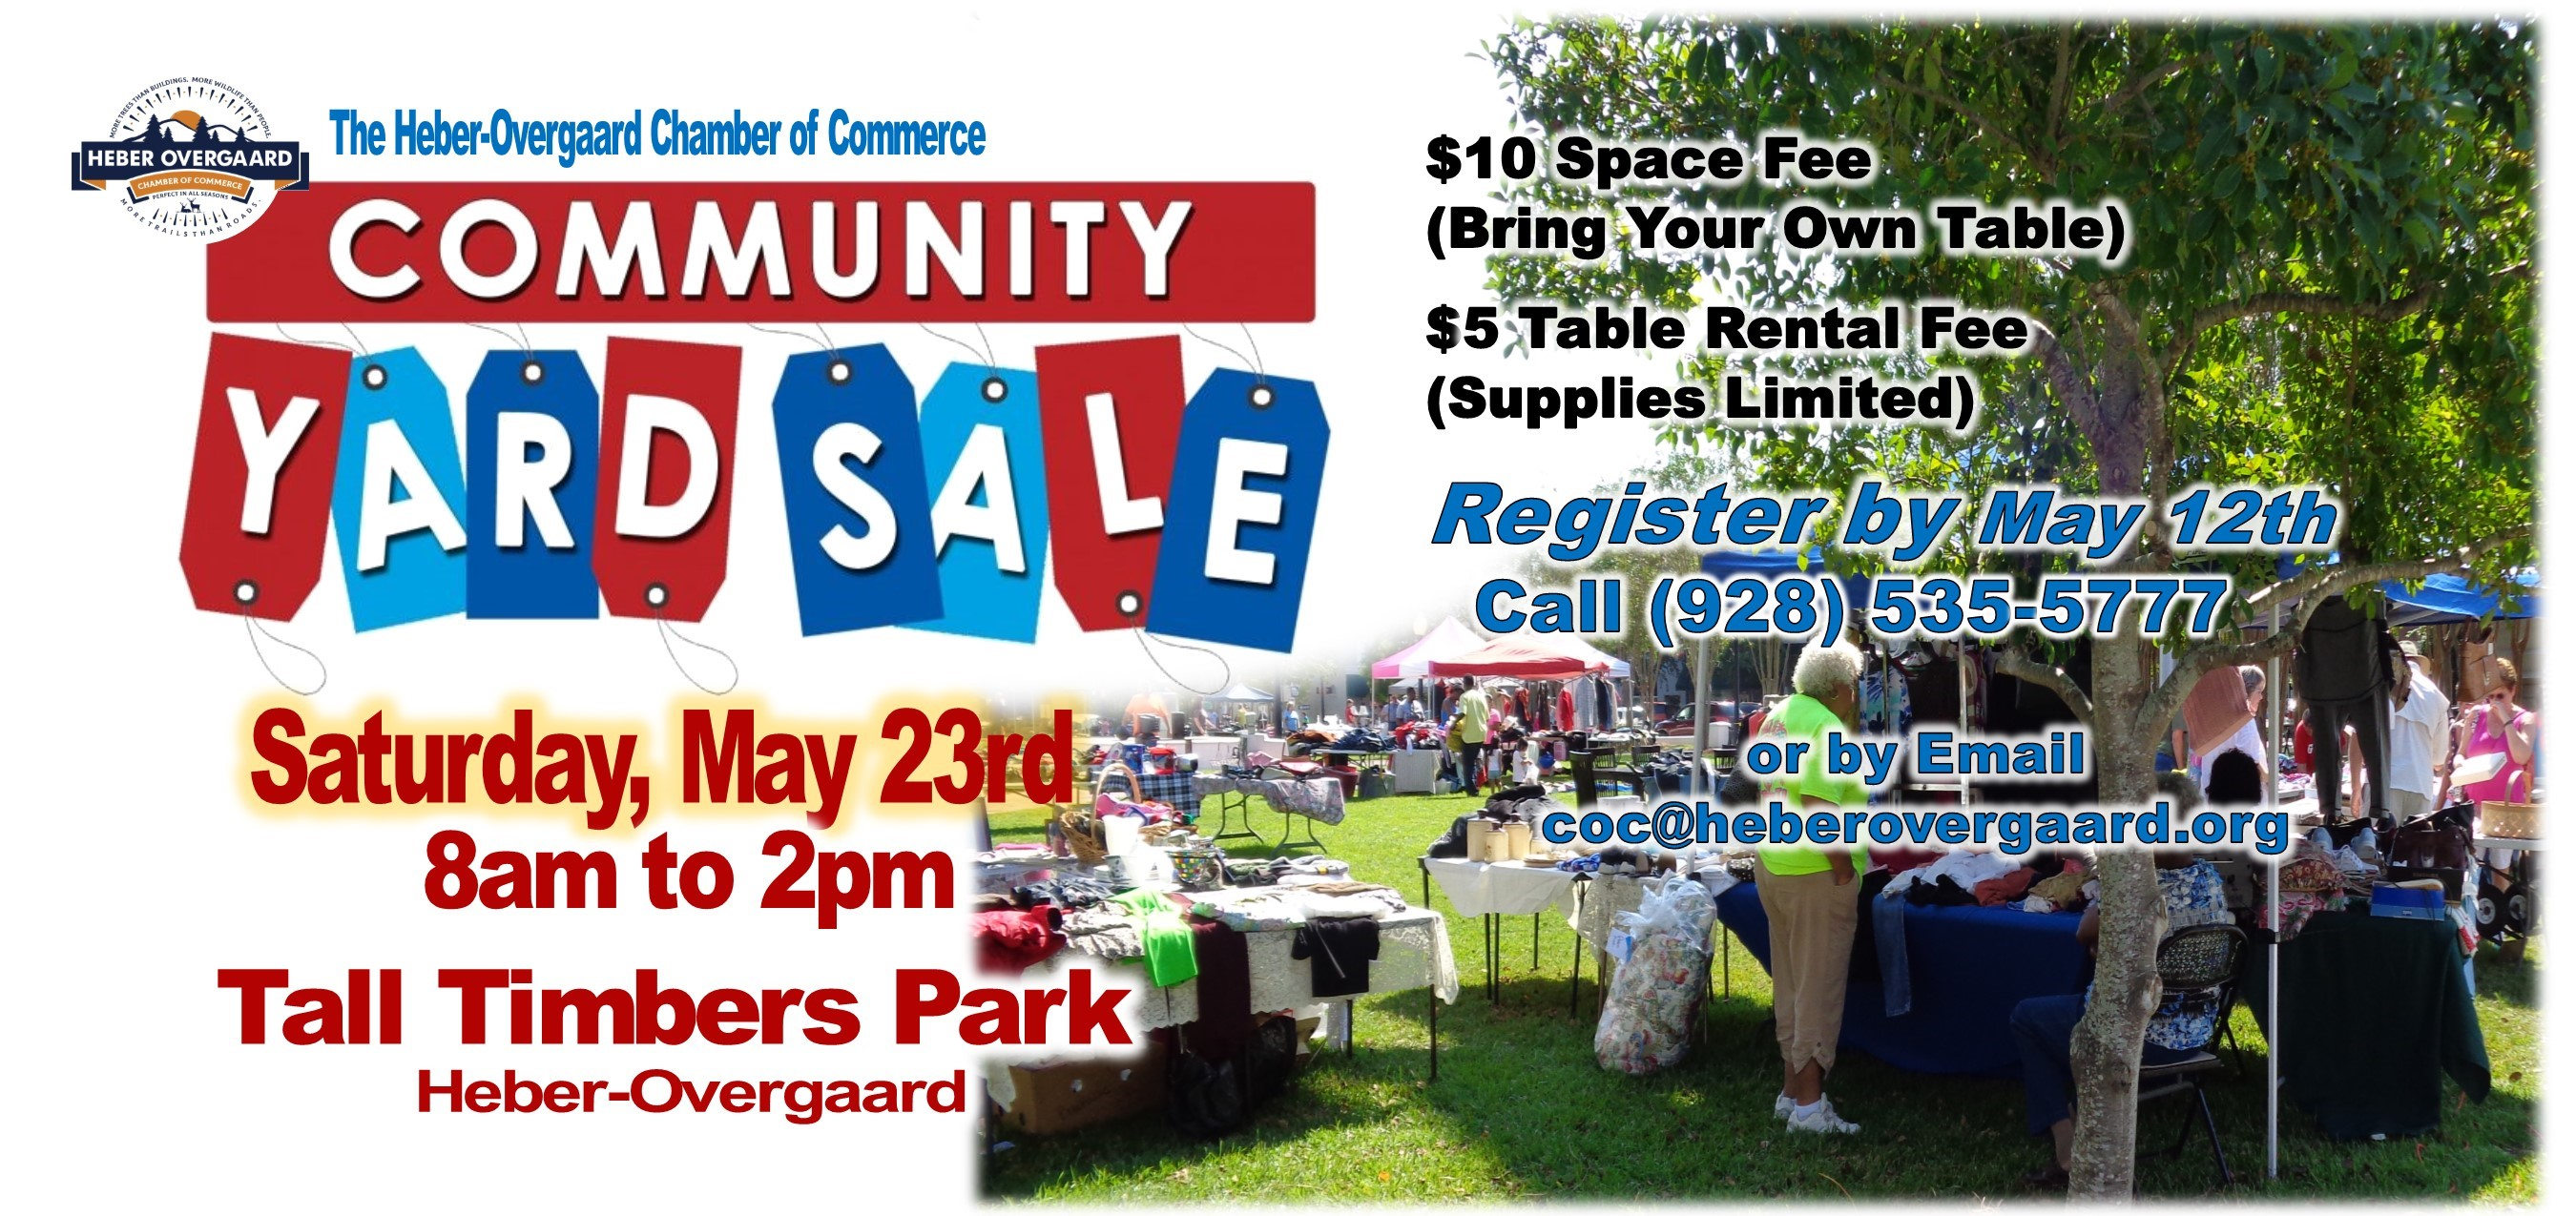 2020 Community Yard Sale